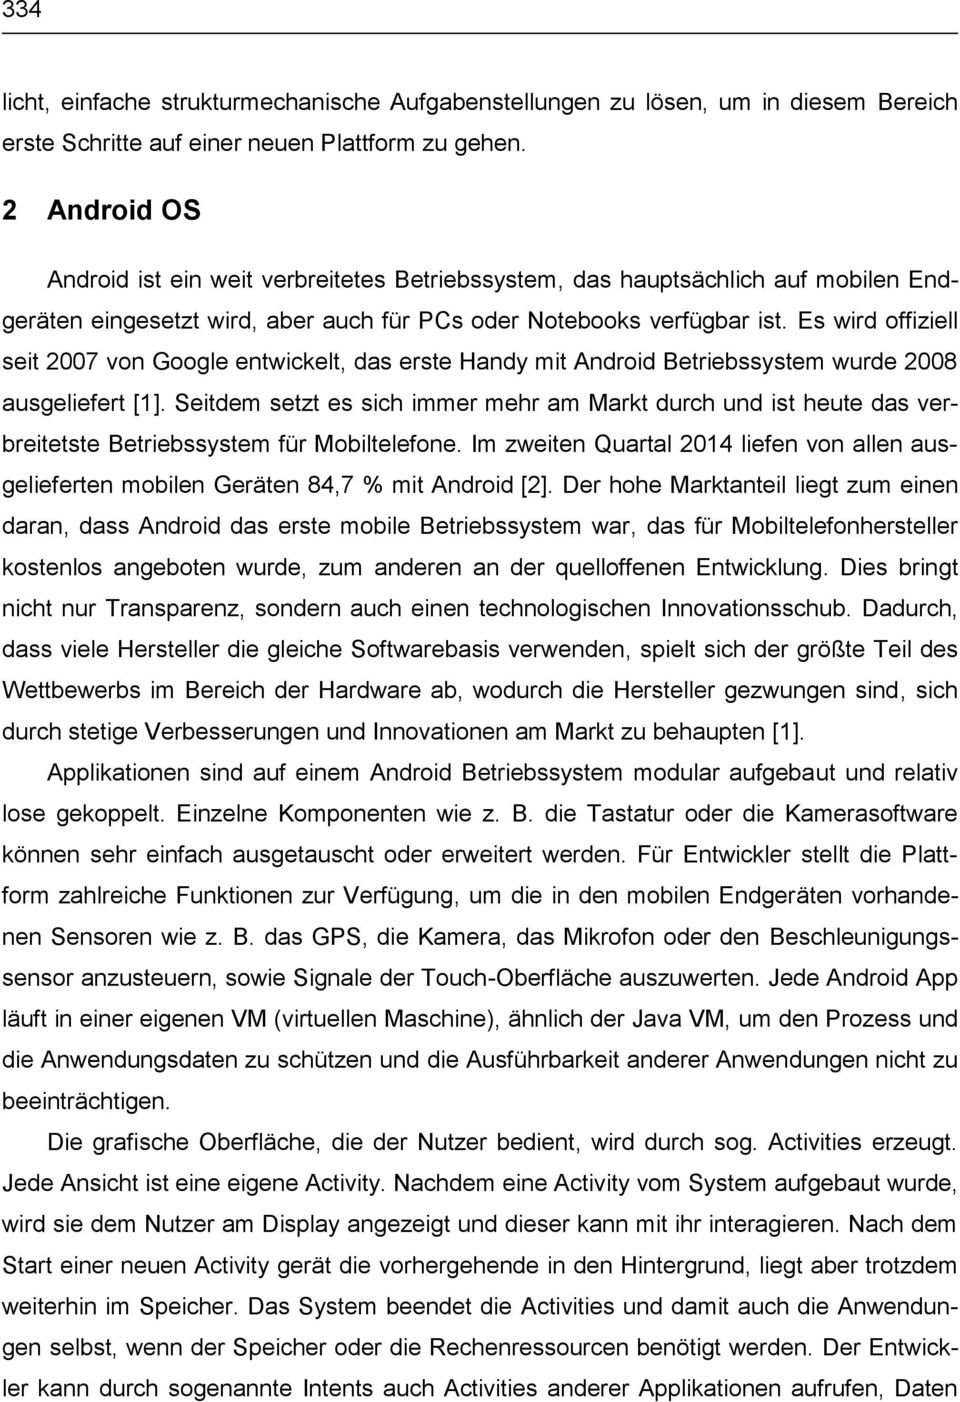 Finite elemente analyse auf android pdf for Finite elemente analyse